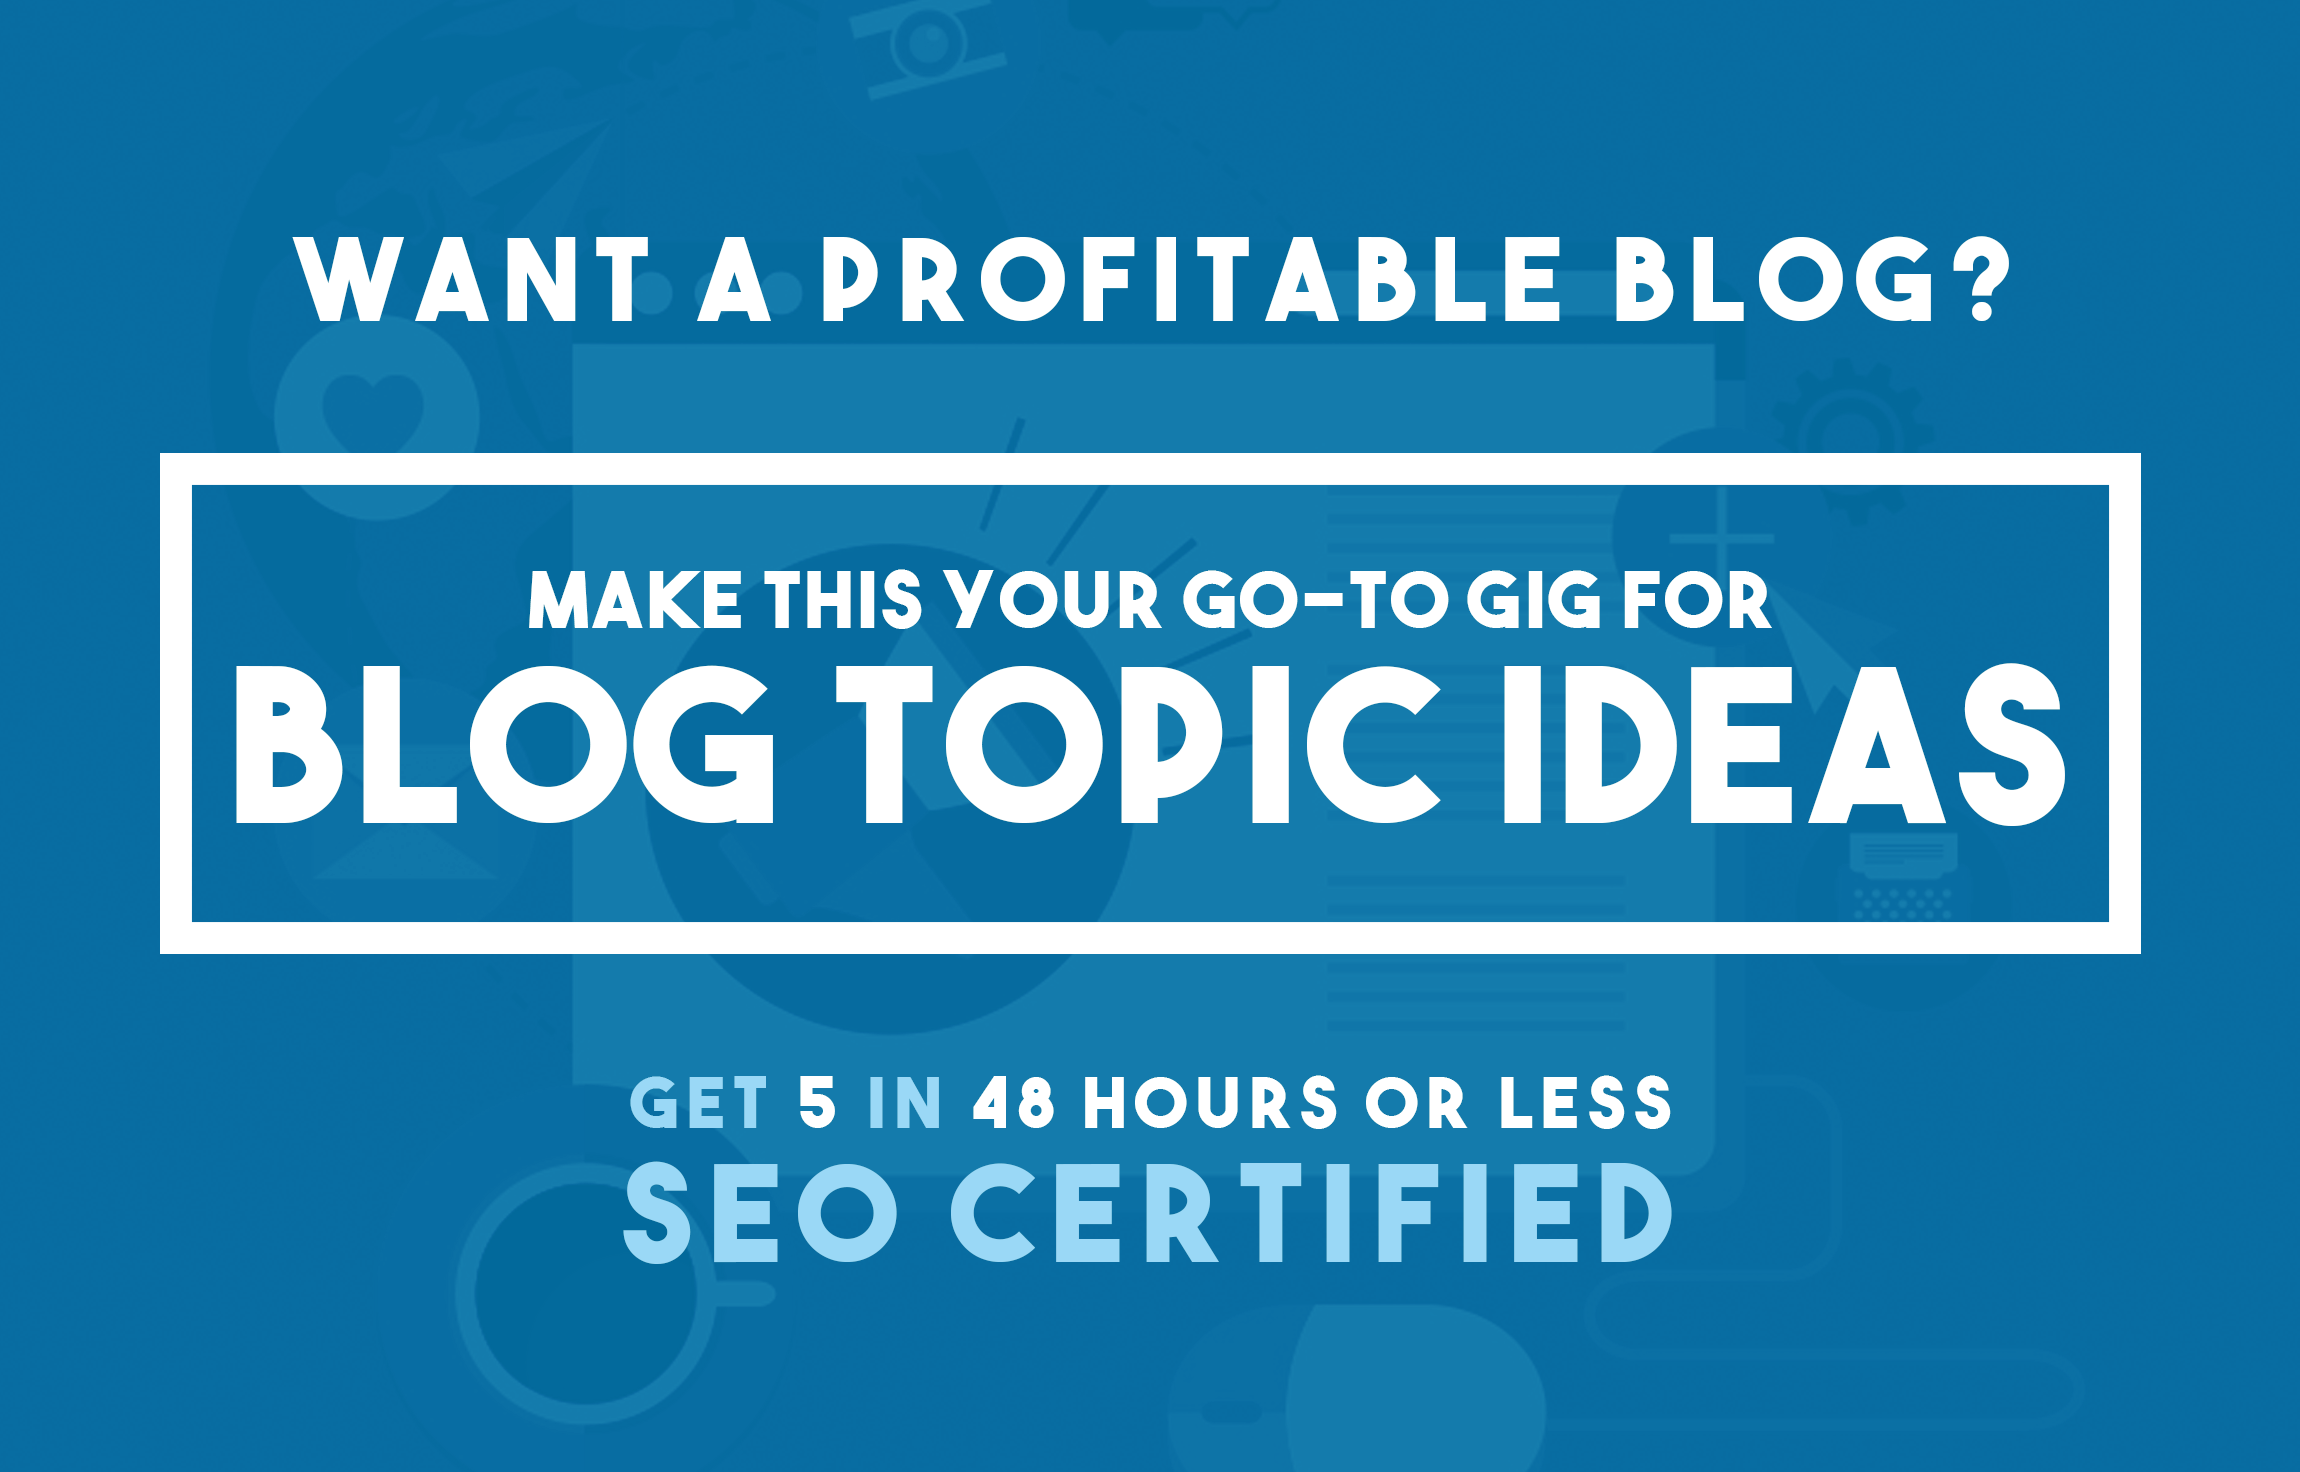 Get 5 Killer Blog Topic Ideas with SEO